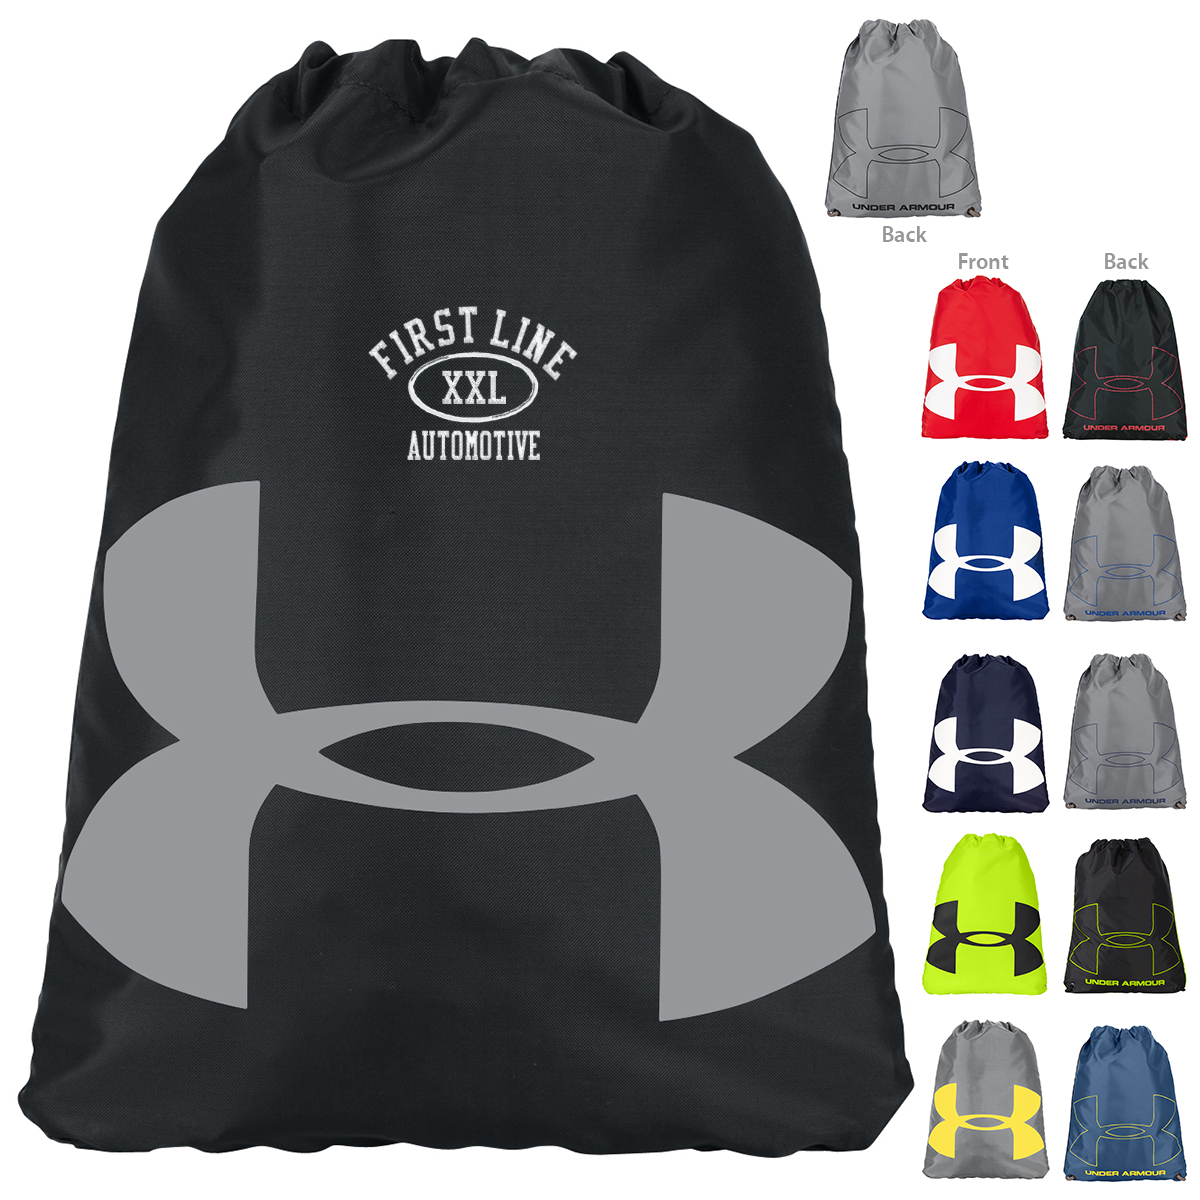 f455a0f0405 Under Armour Drawstring Backpack Bag - CEAGESP